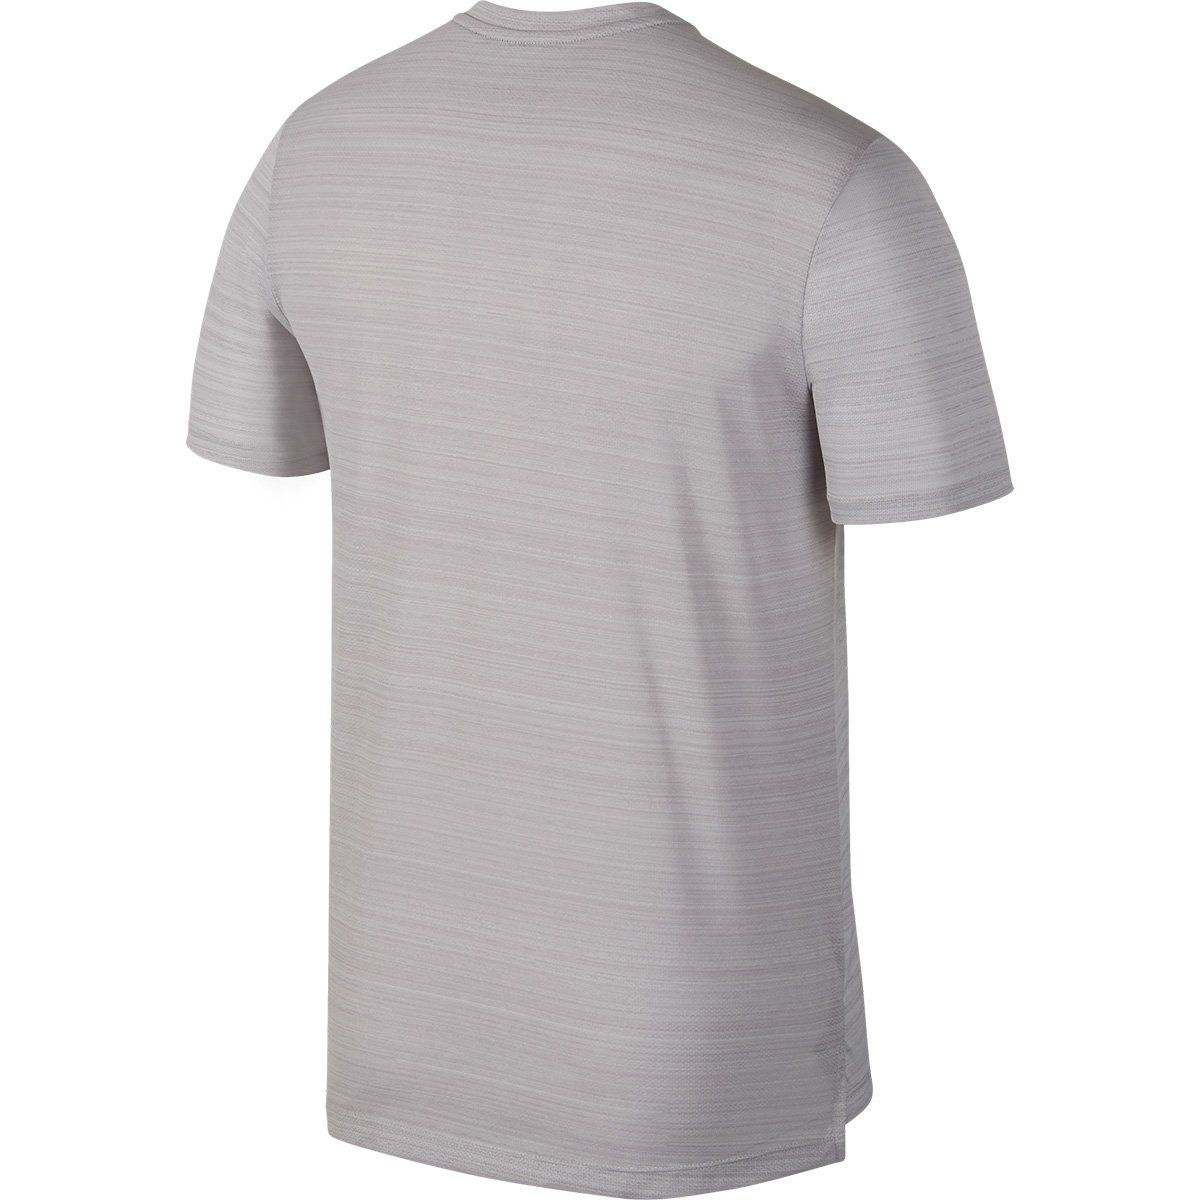 Camiseta Nike Dri Fit Miler Top SS Cinza